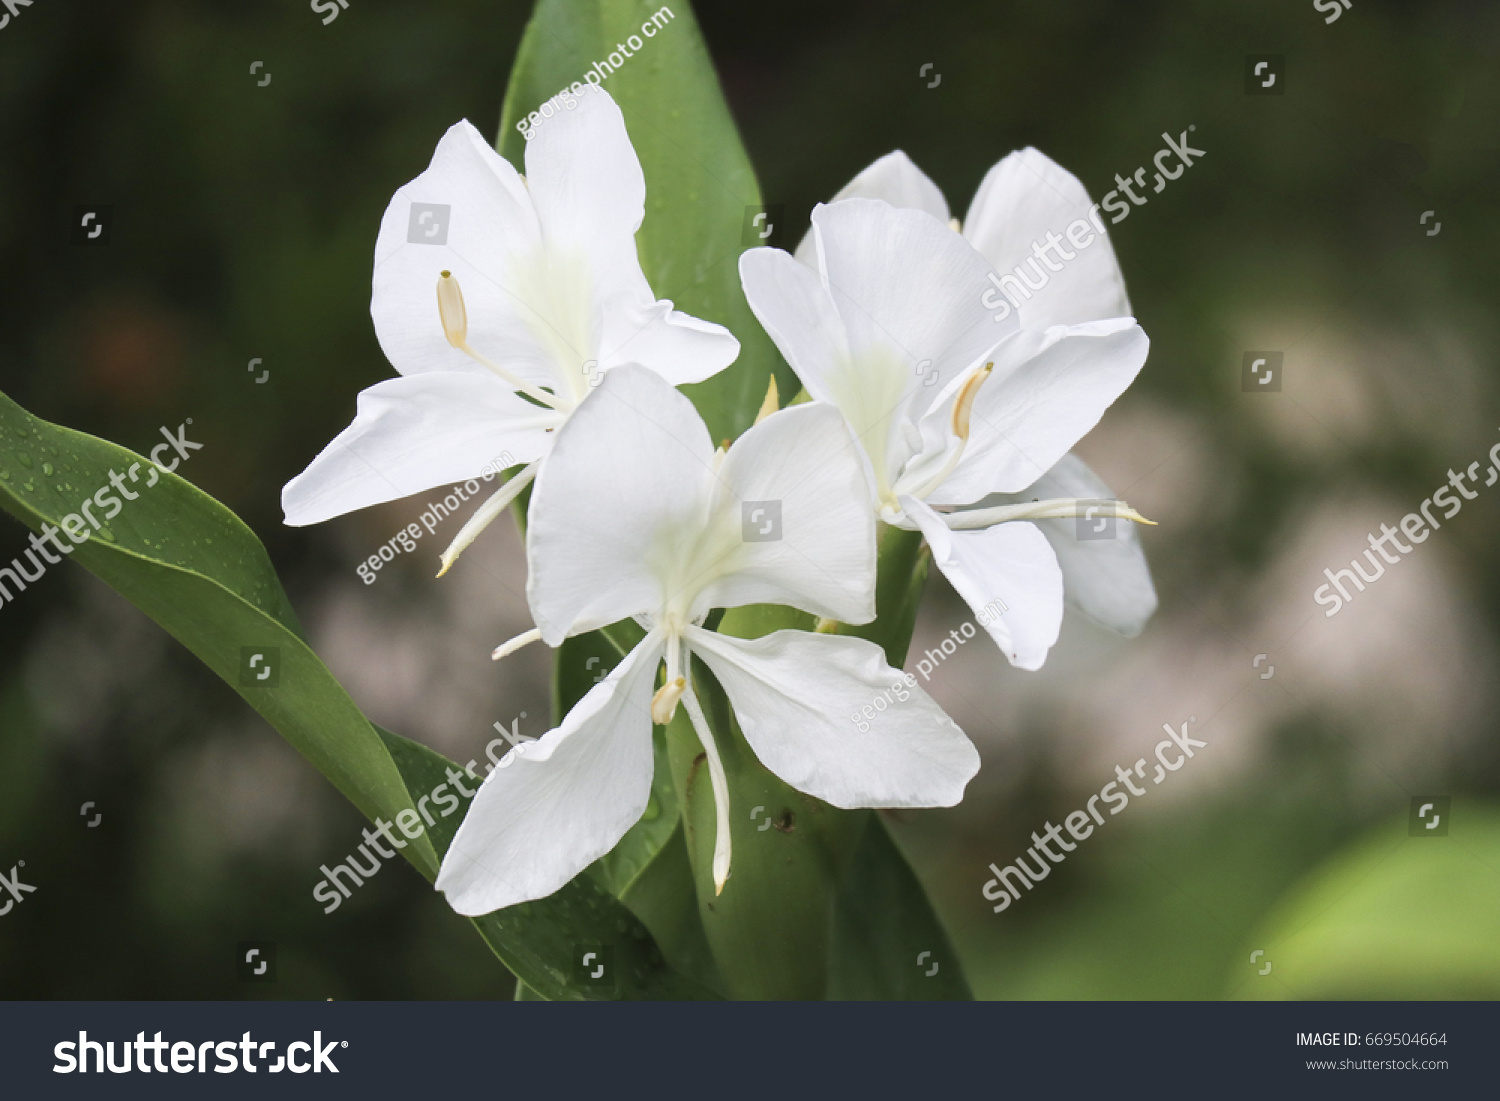 White Butterfly Lily In The Garden Garland Flower Or White Ginger